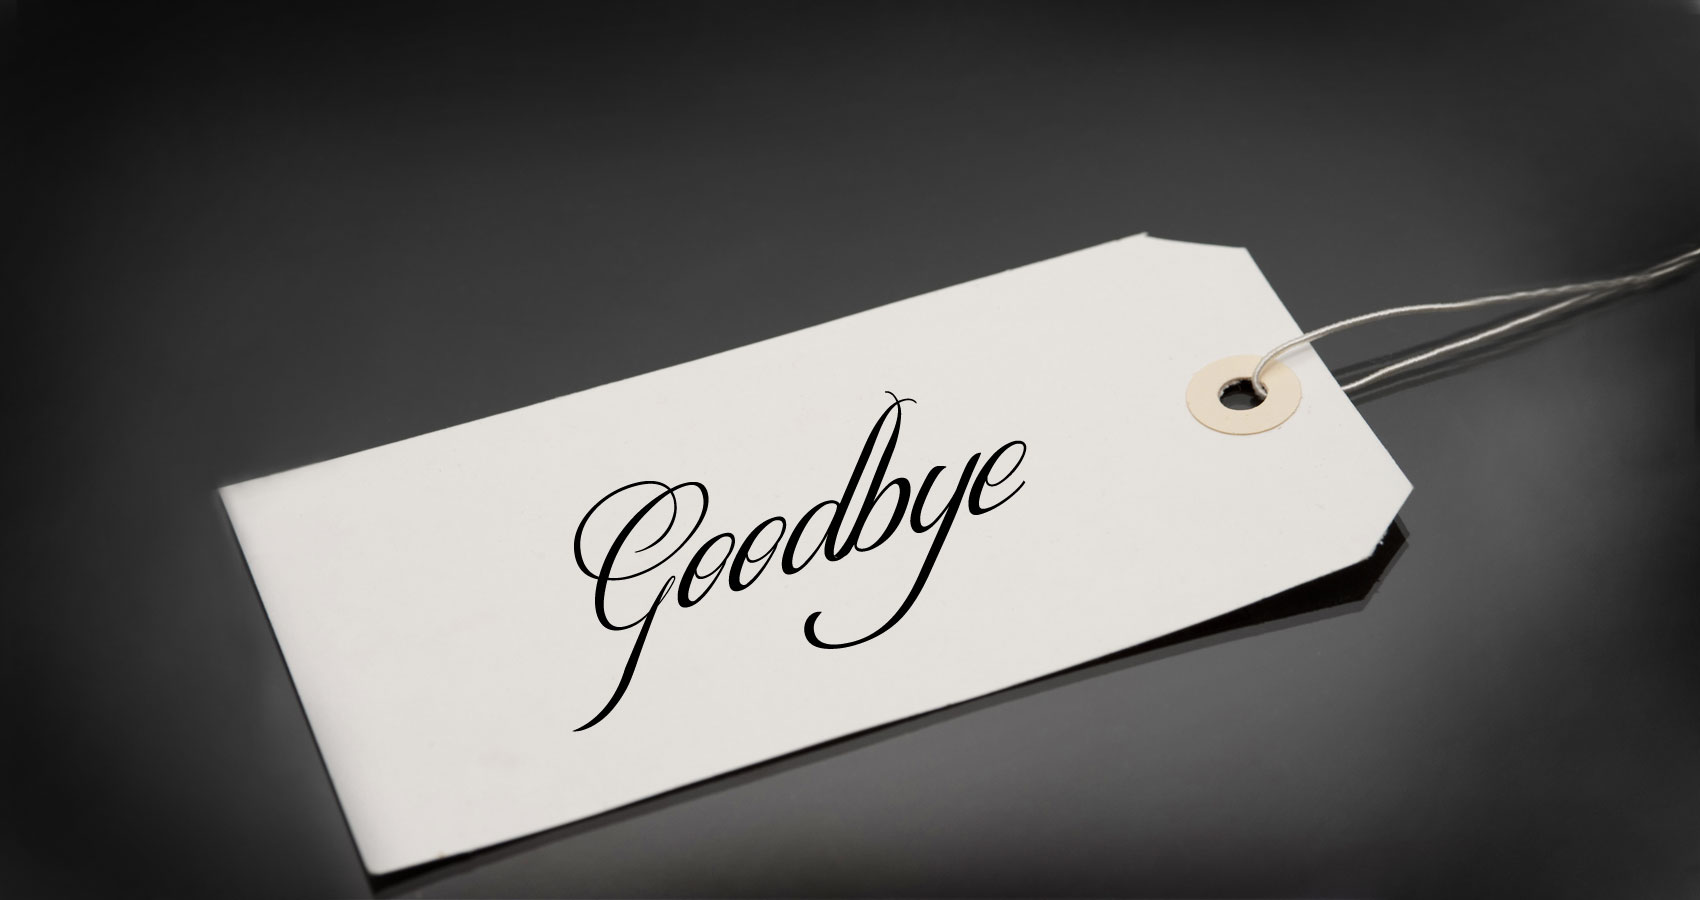 GOODBYE by Ingela at Spillwords.com